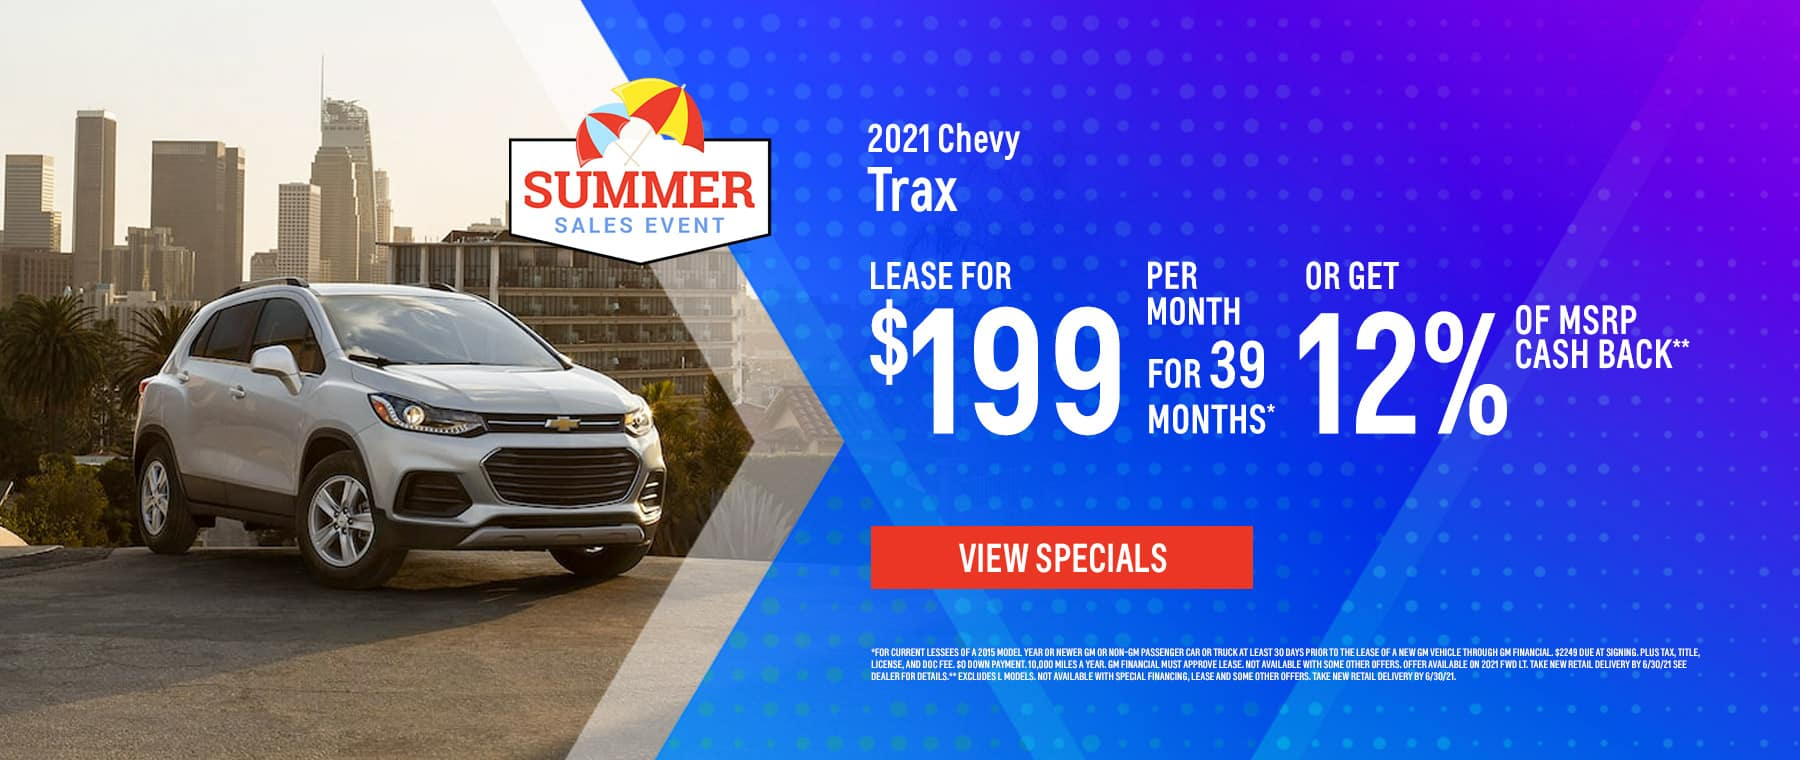 chevy trax-1800×760-june-21-1